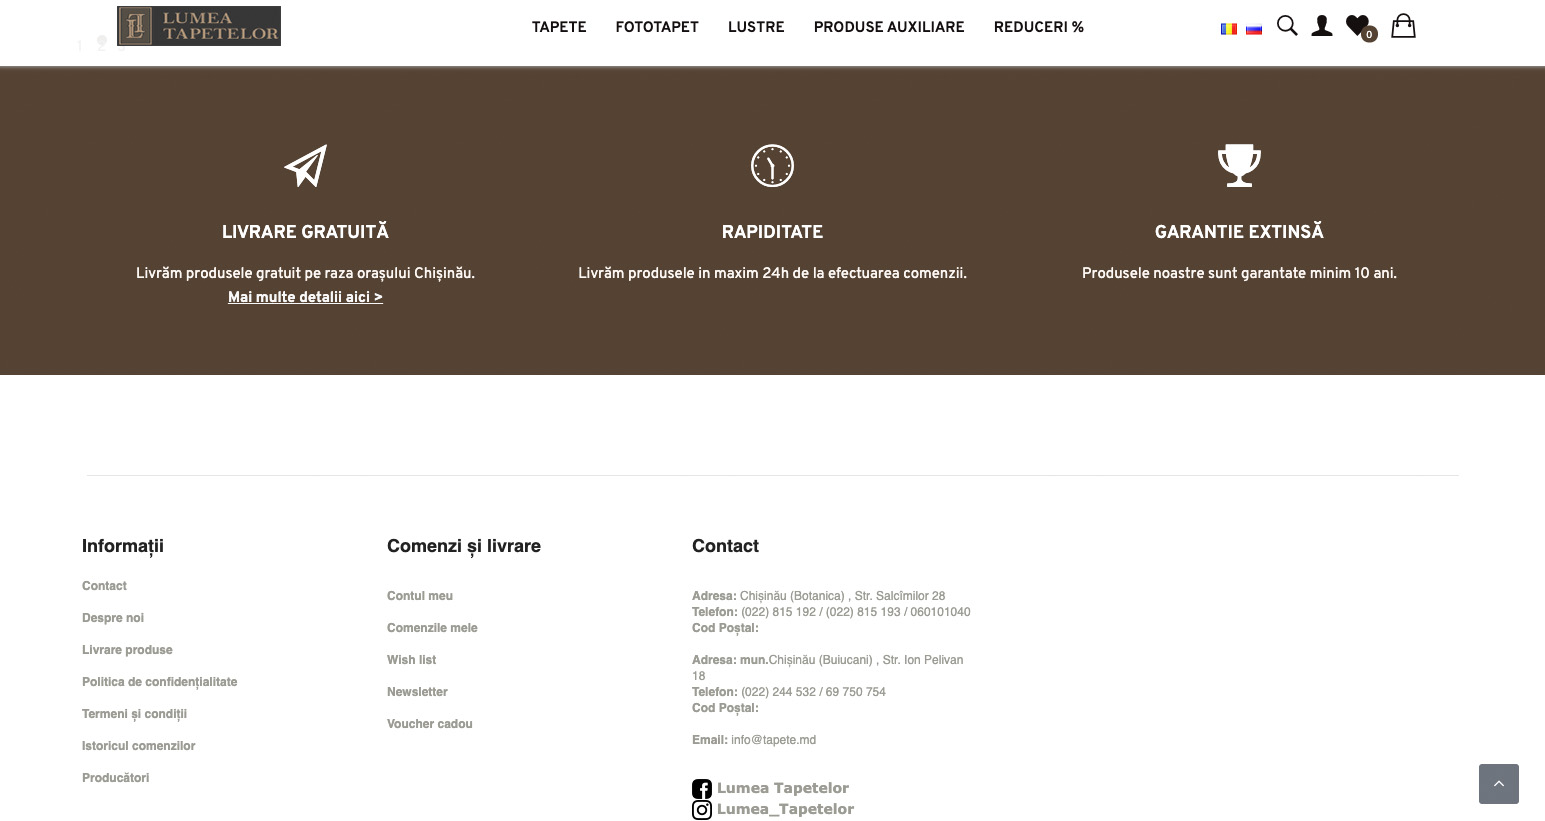 Redesign of the online store Lumea Tapetelor 5